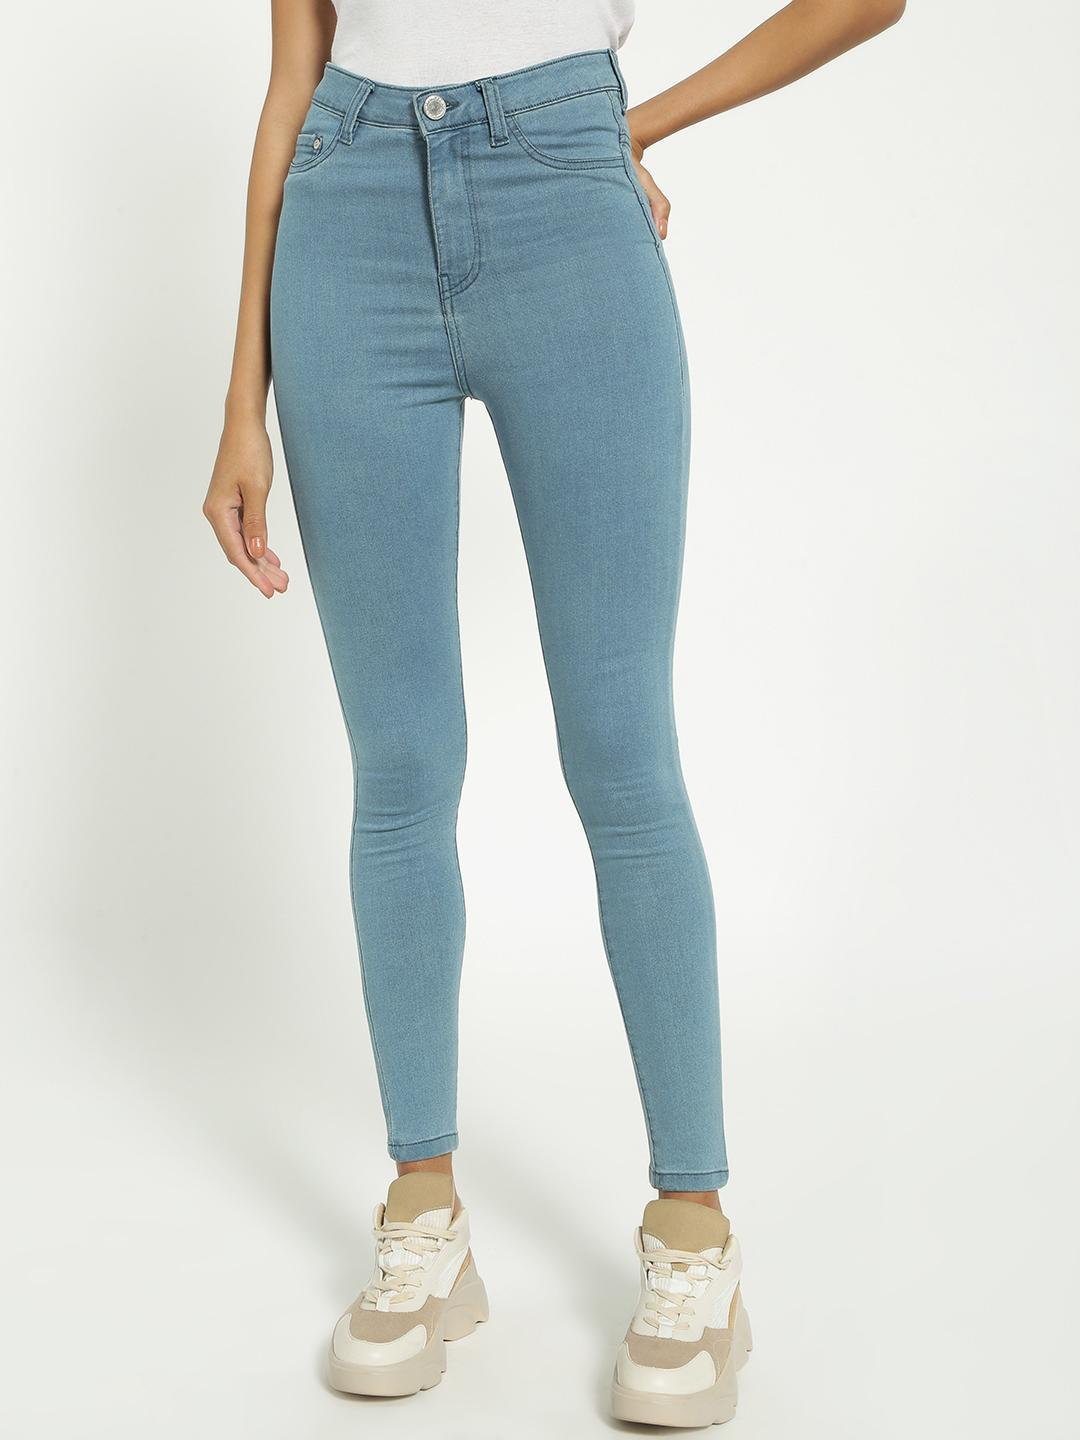 Blue Saint Blue Light-Wash High Waist Skinny Jeans 1